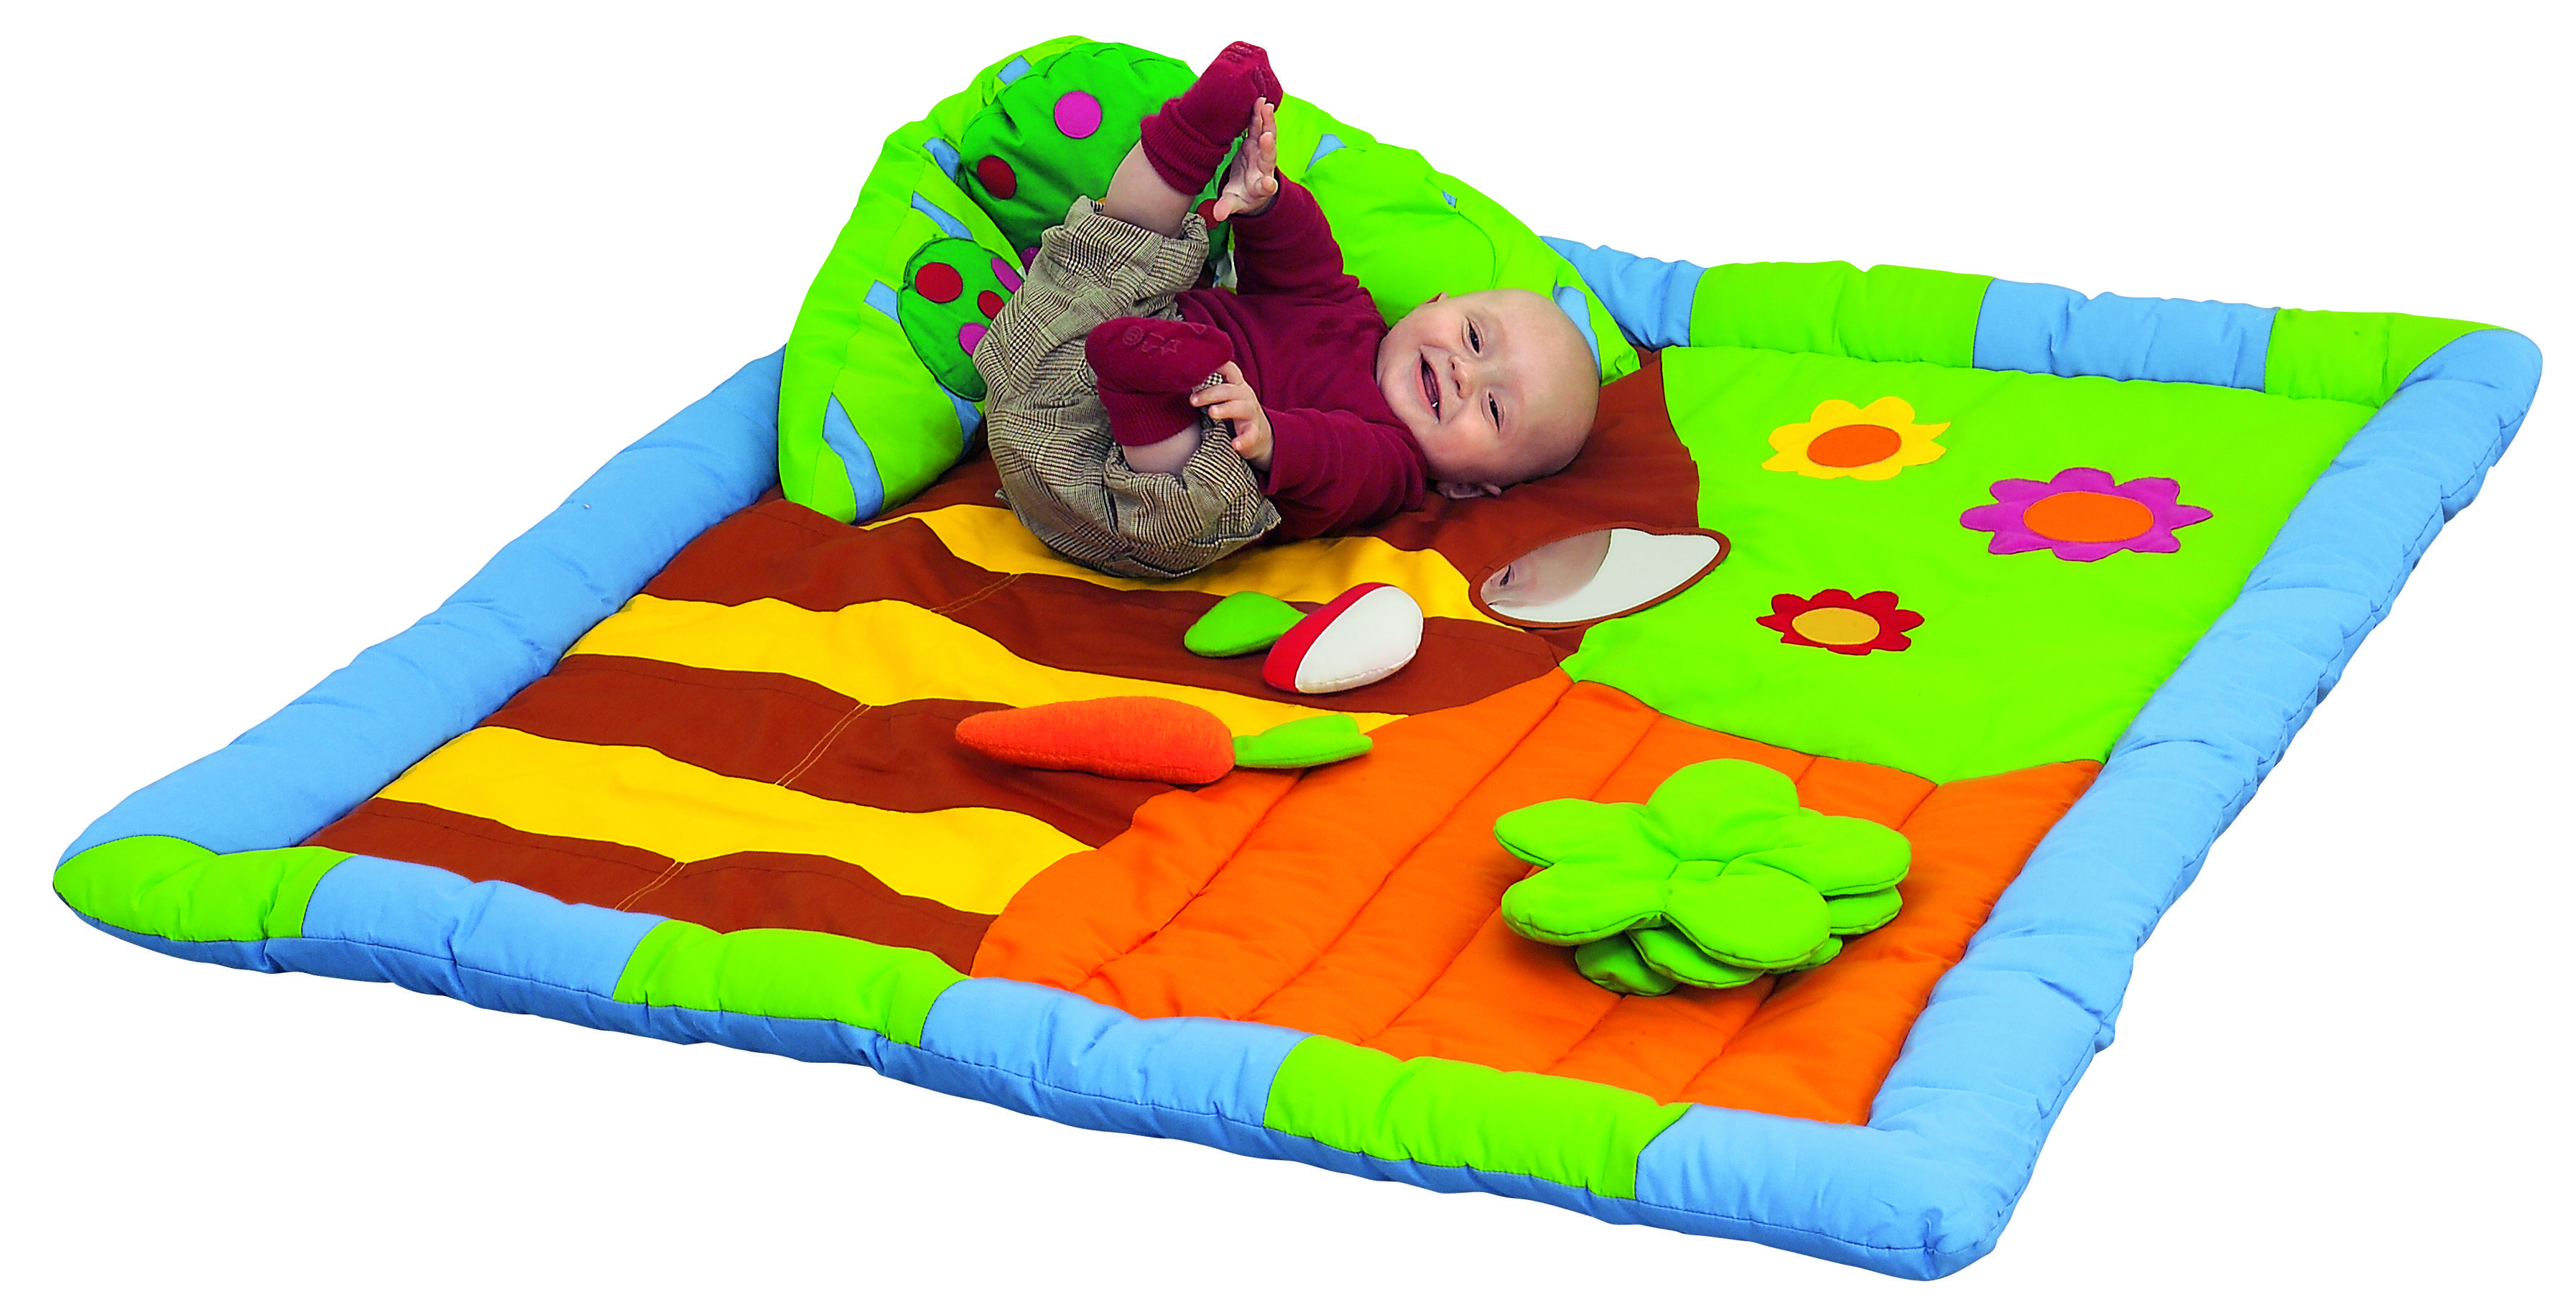 The Countryside 3d Activity Mat From Wesco Soft Easy To Clean And Perfect For Exploring Babymats Babyprodu Activity Mat Baby Play Mat Preschool Supplies